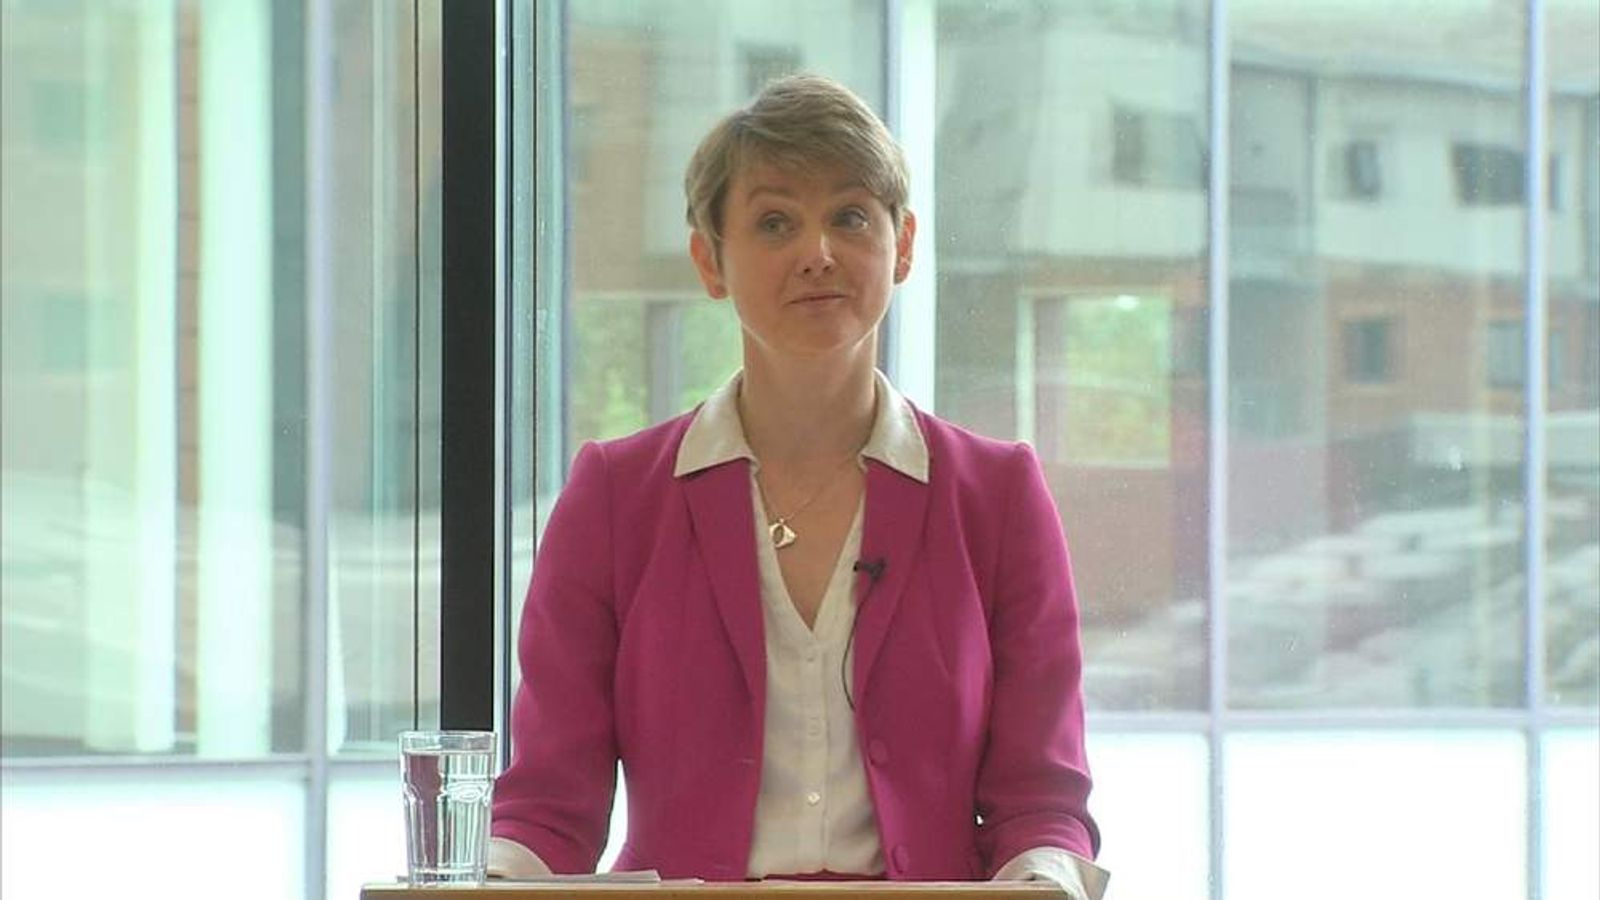 abour leadership contender Yvette Cooper addresses supporters